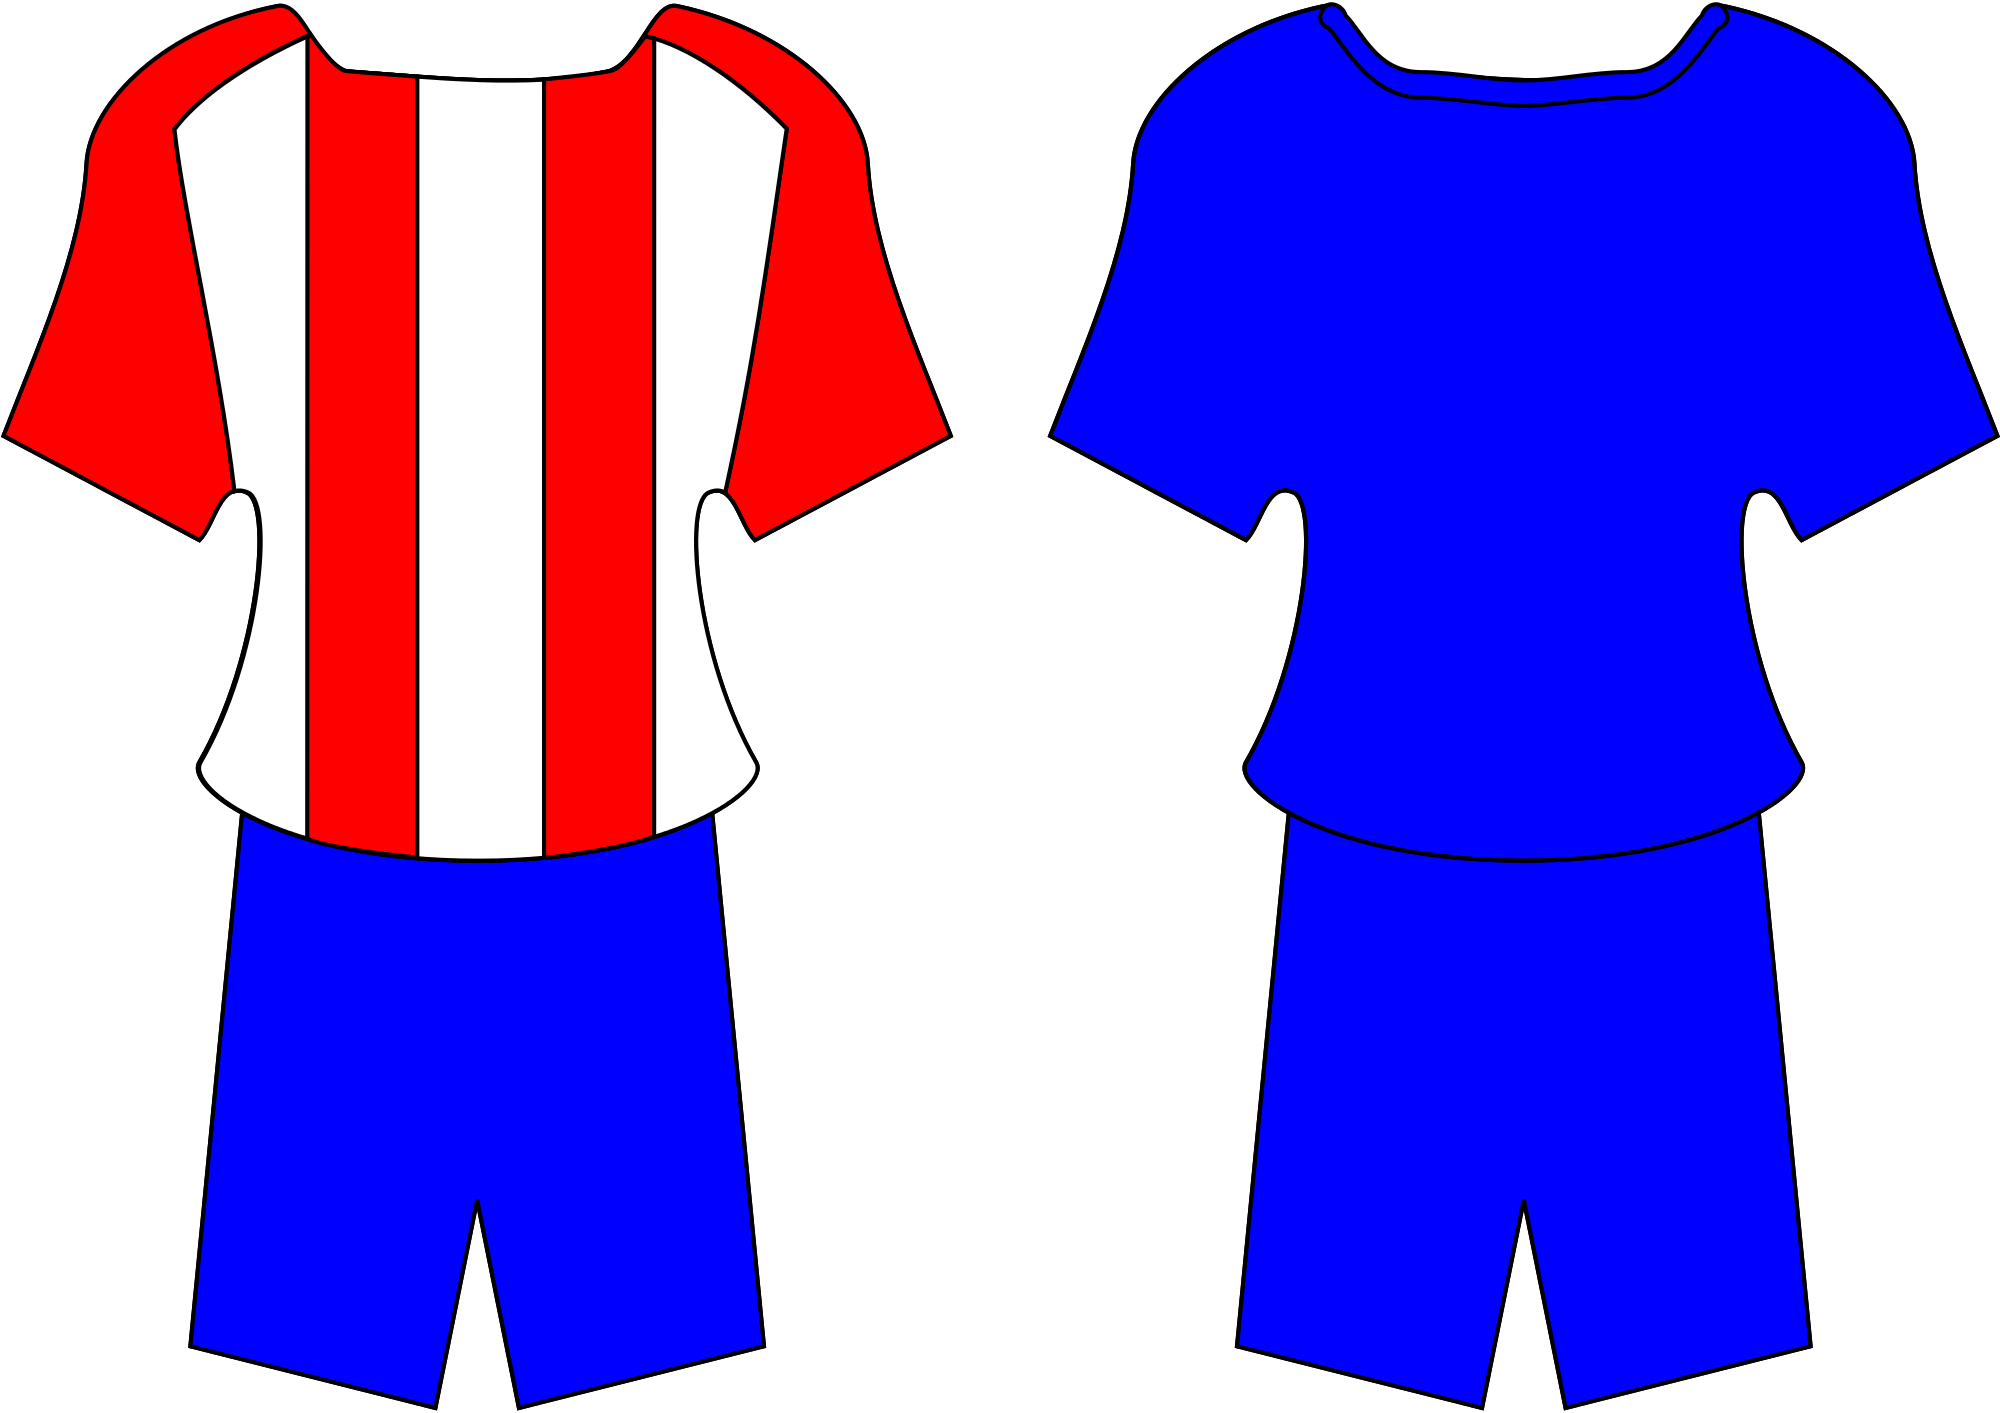 Free football jersey clipart banner stock File:PRY football kit.svg - Wikimedia Commons banner stock